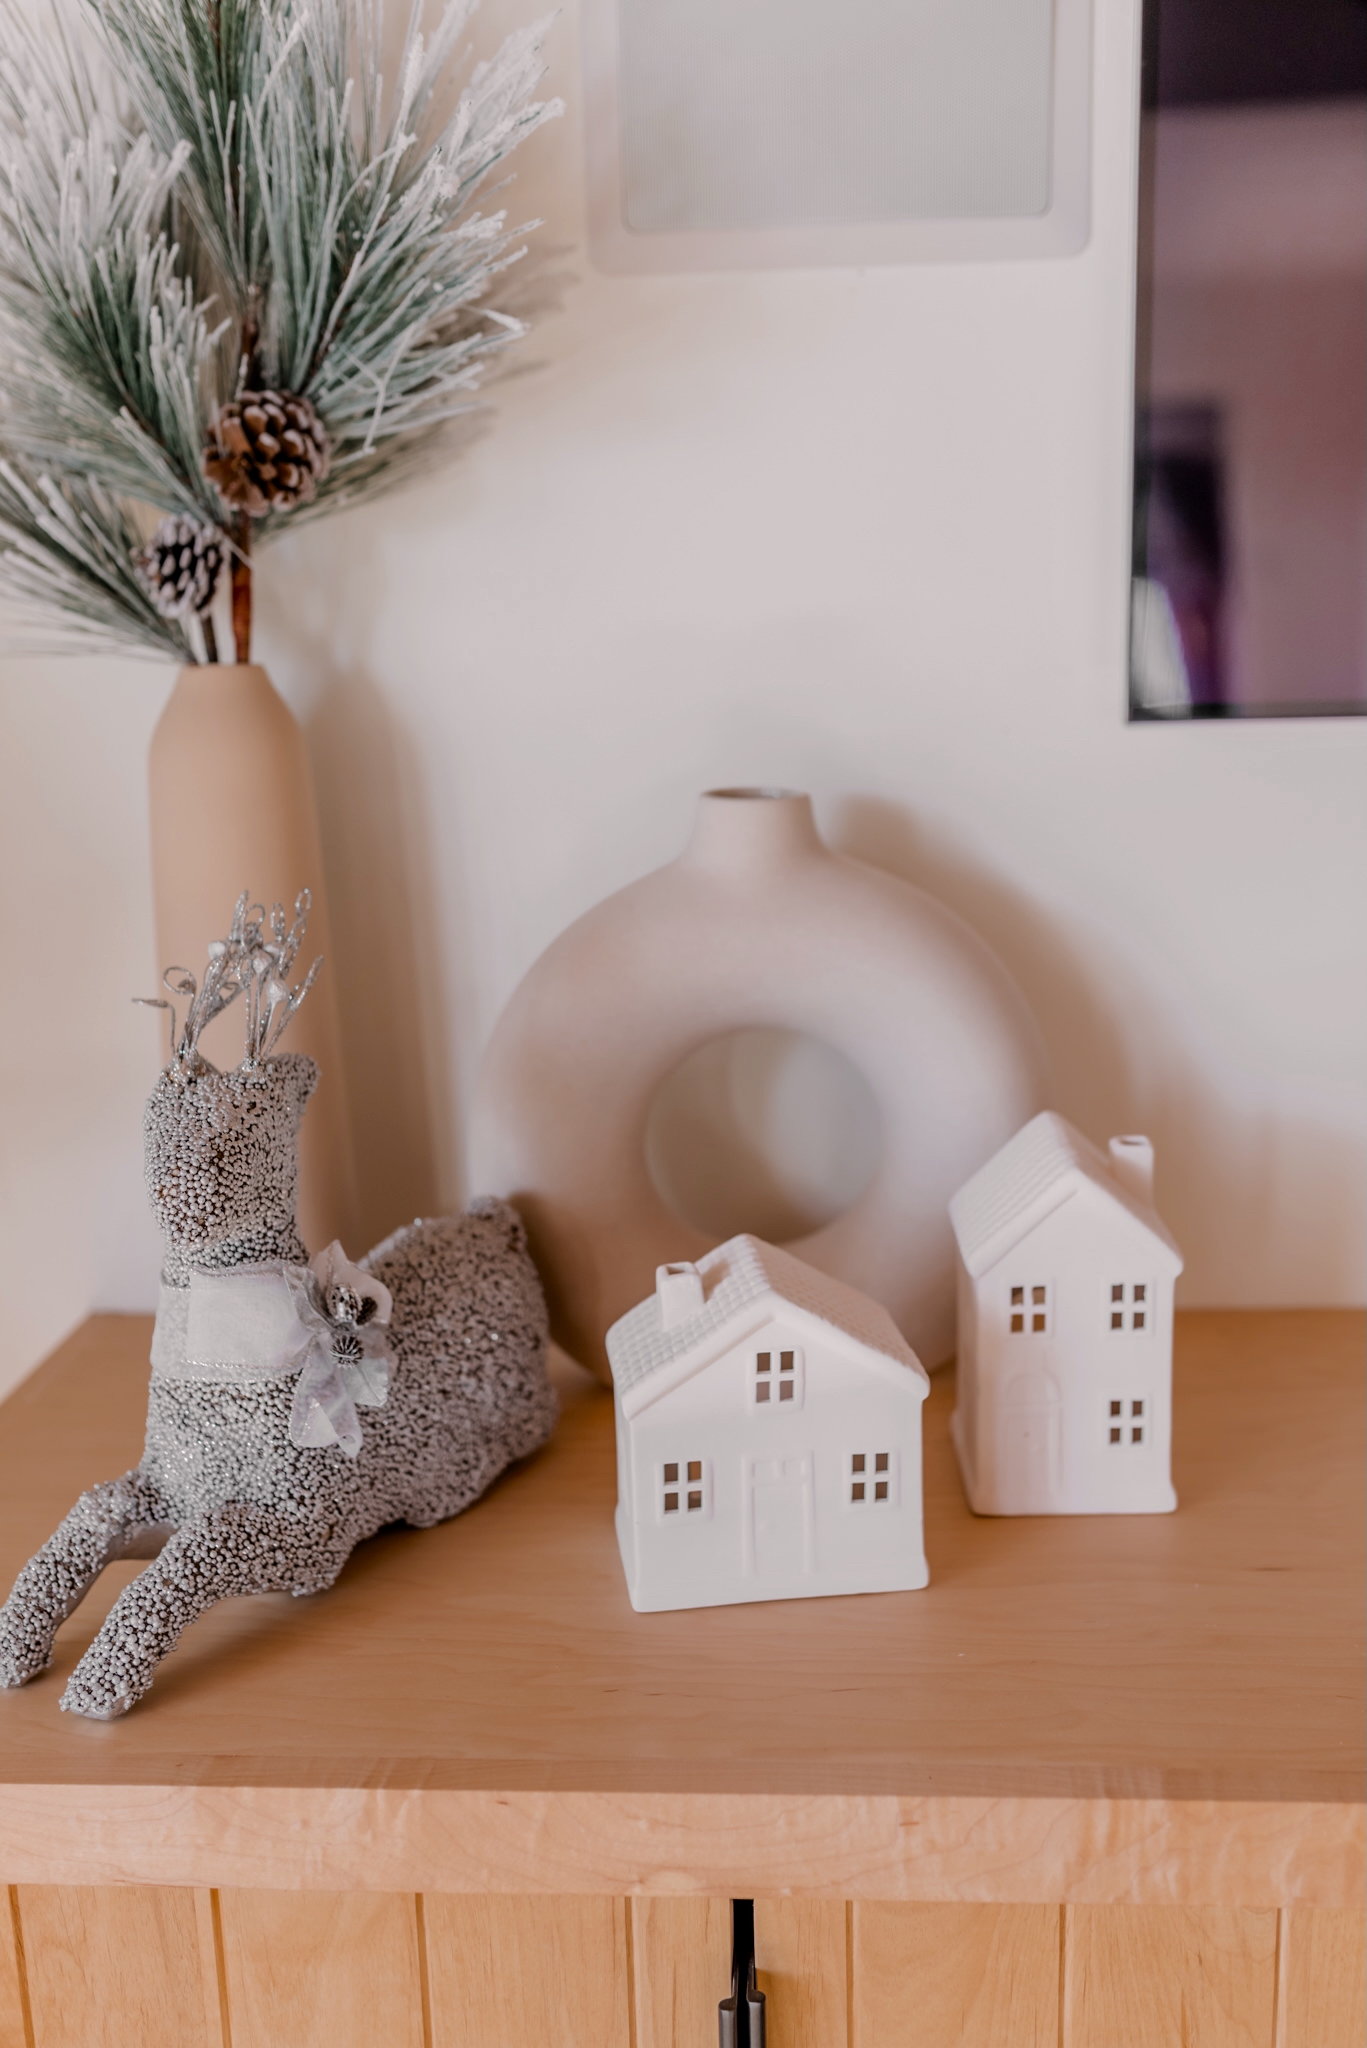 Holiday Gift Guide for the Home  Gifts for the Home by popular San Diego life and style blog, Navy Grace: image of white ceramic houses, reindeer decor, and flocked pine boughs in a cream vase.